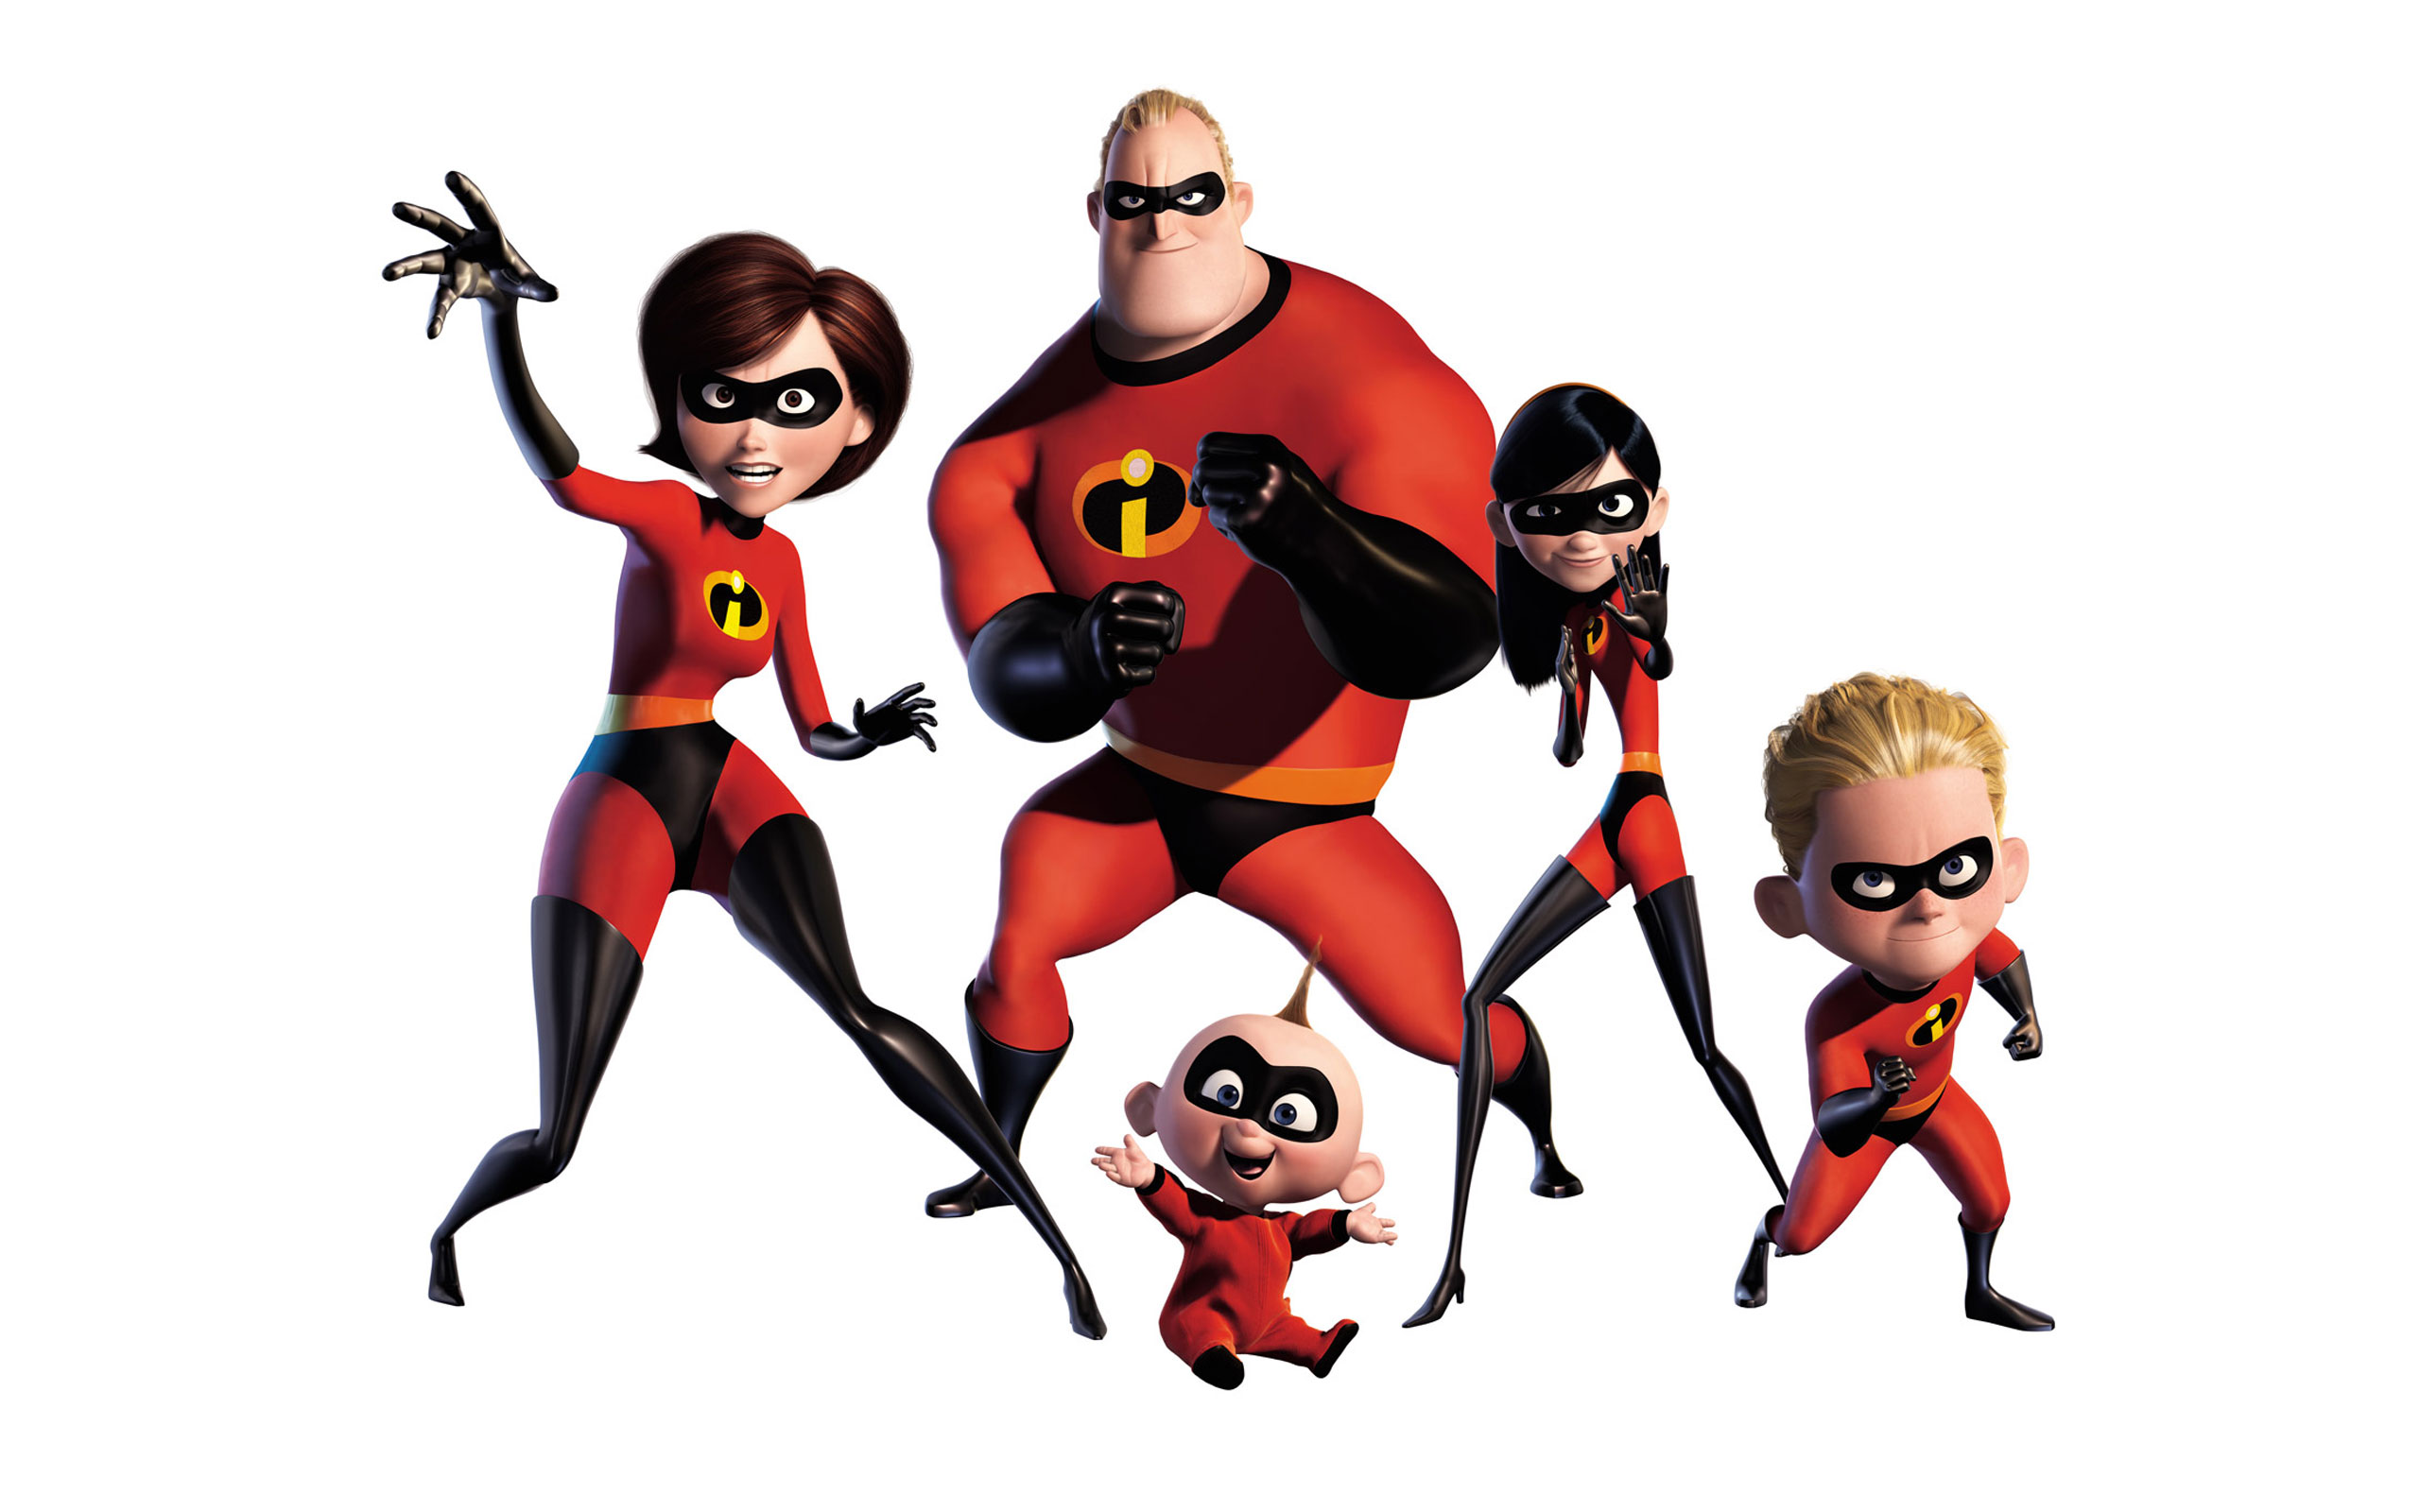 2560x1600 The Incredibles 2 An Update On Your Favorite Superhero Family